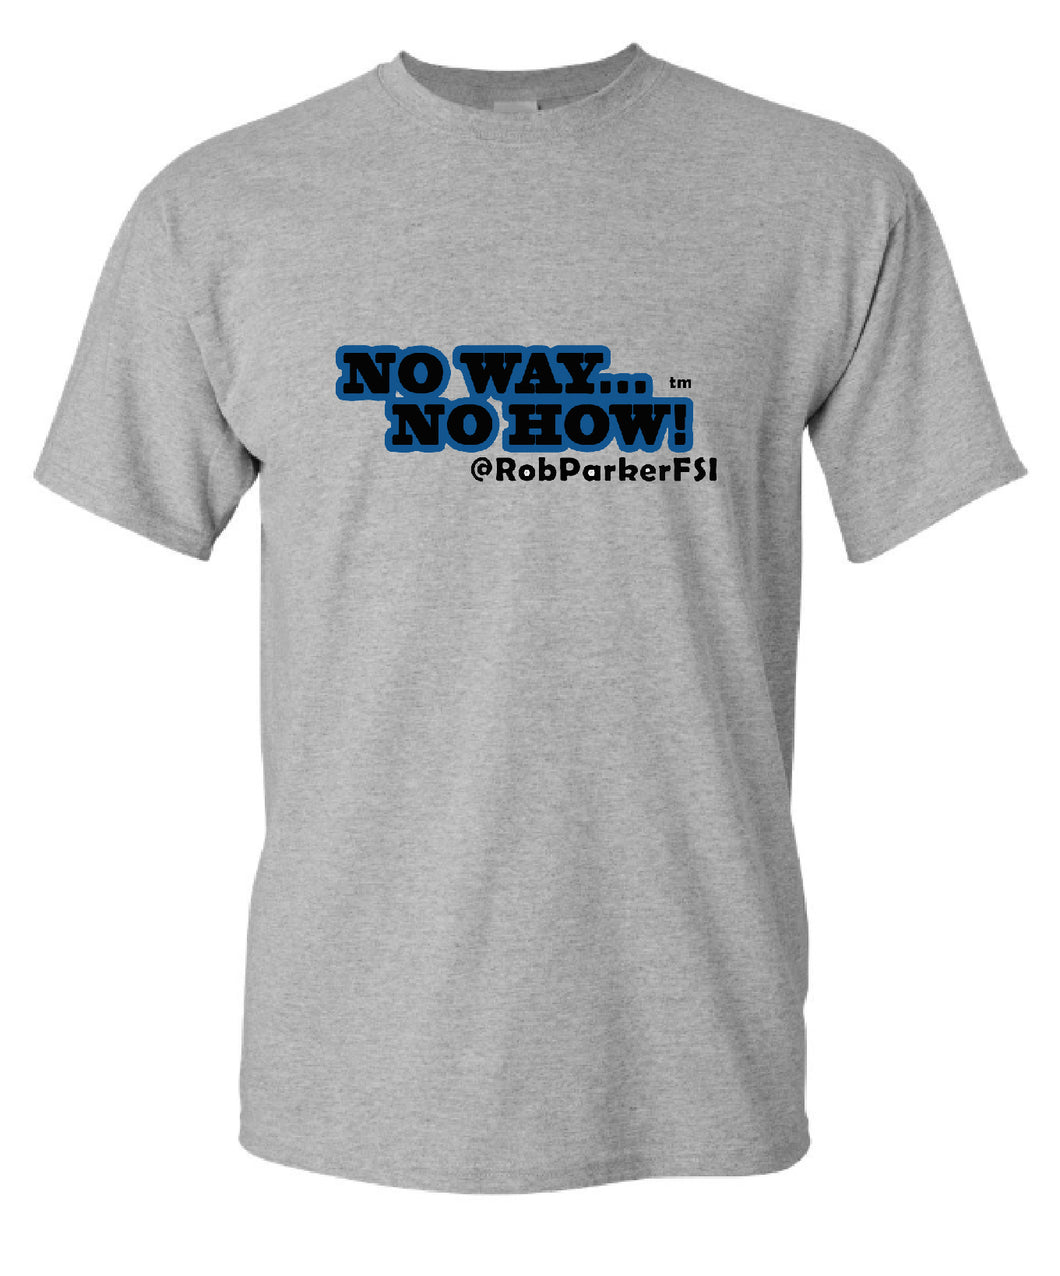 Rob Parker 'No Way, No How!' T-Shirt - Grey